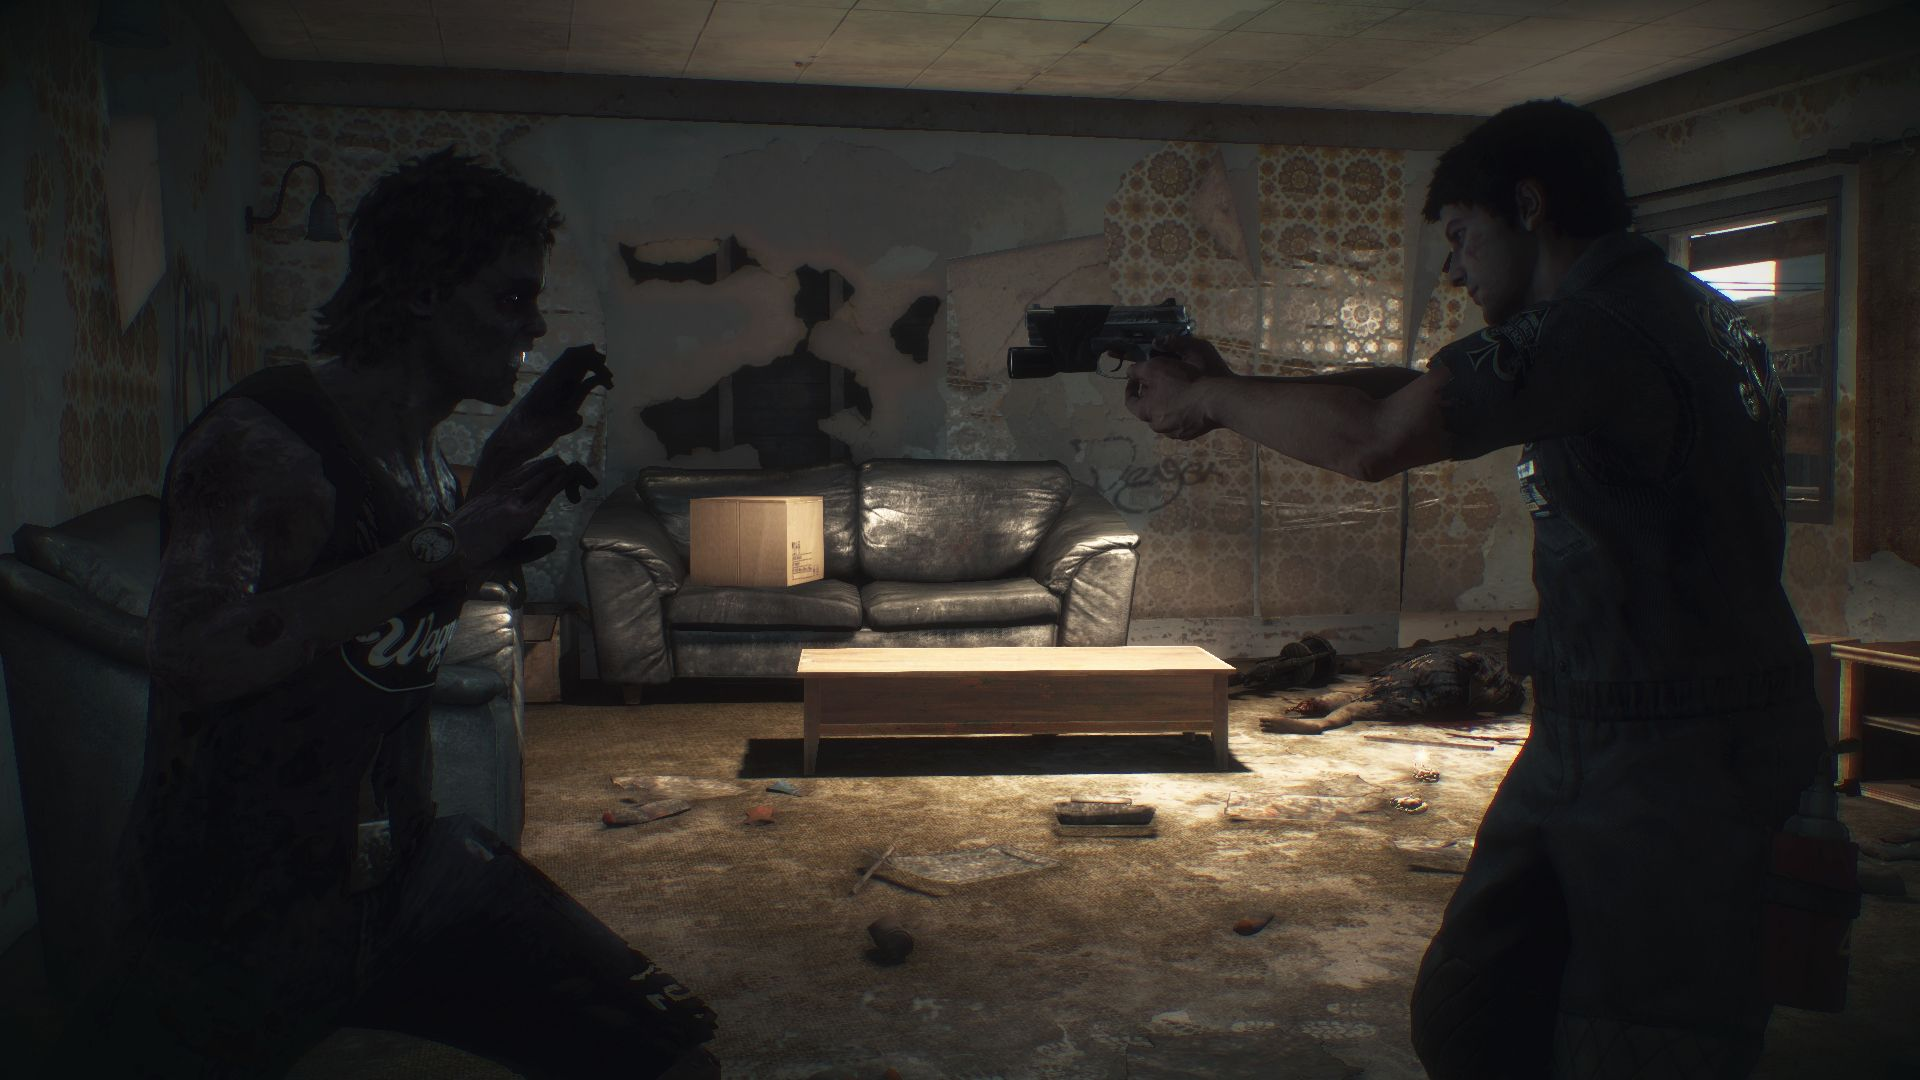 Dead Rising 3 Screenshots Image 12230 New Game Network